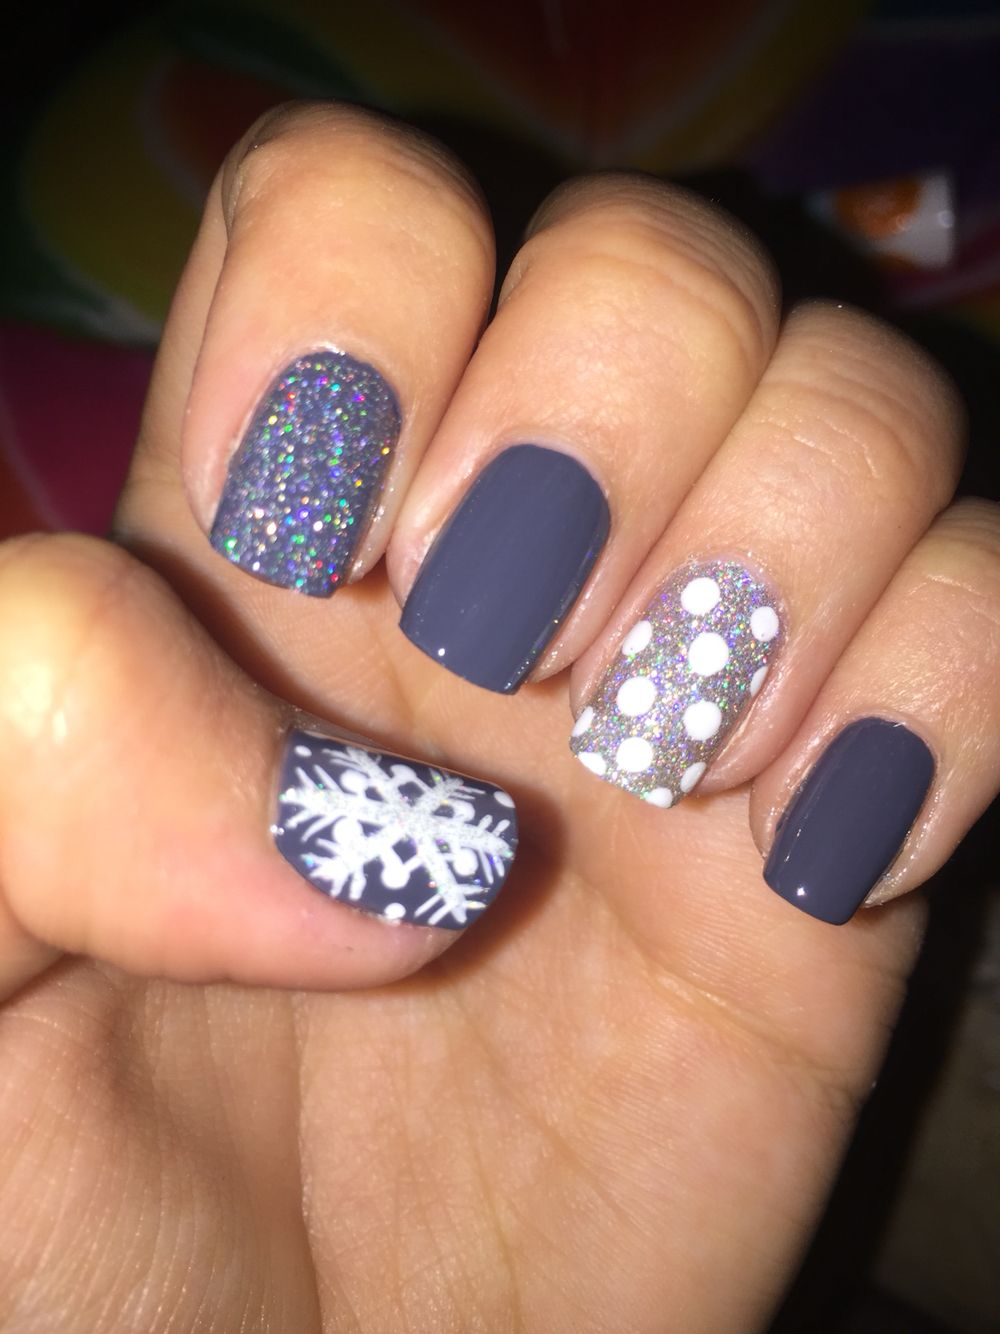 Christmas gel nails done by yours truly nail designs done by yours truly winter nails beauty personal care makeup nails nail art winter nails colors prinsesfo Gallery